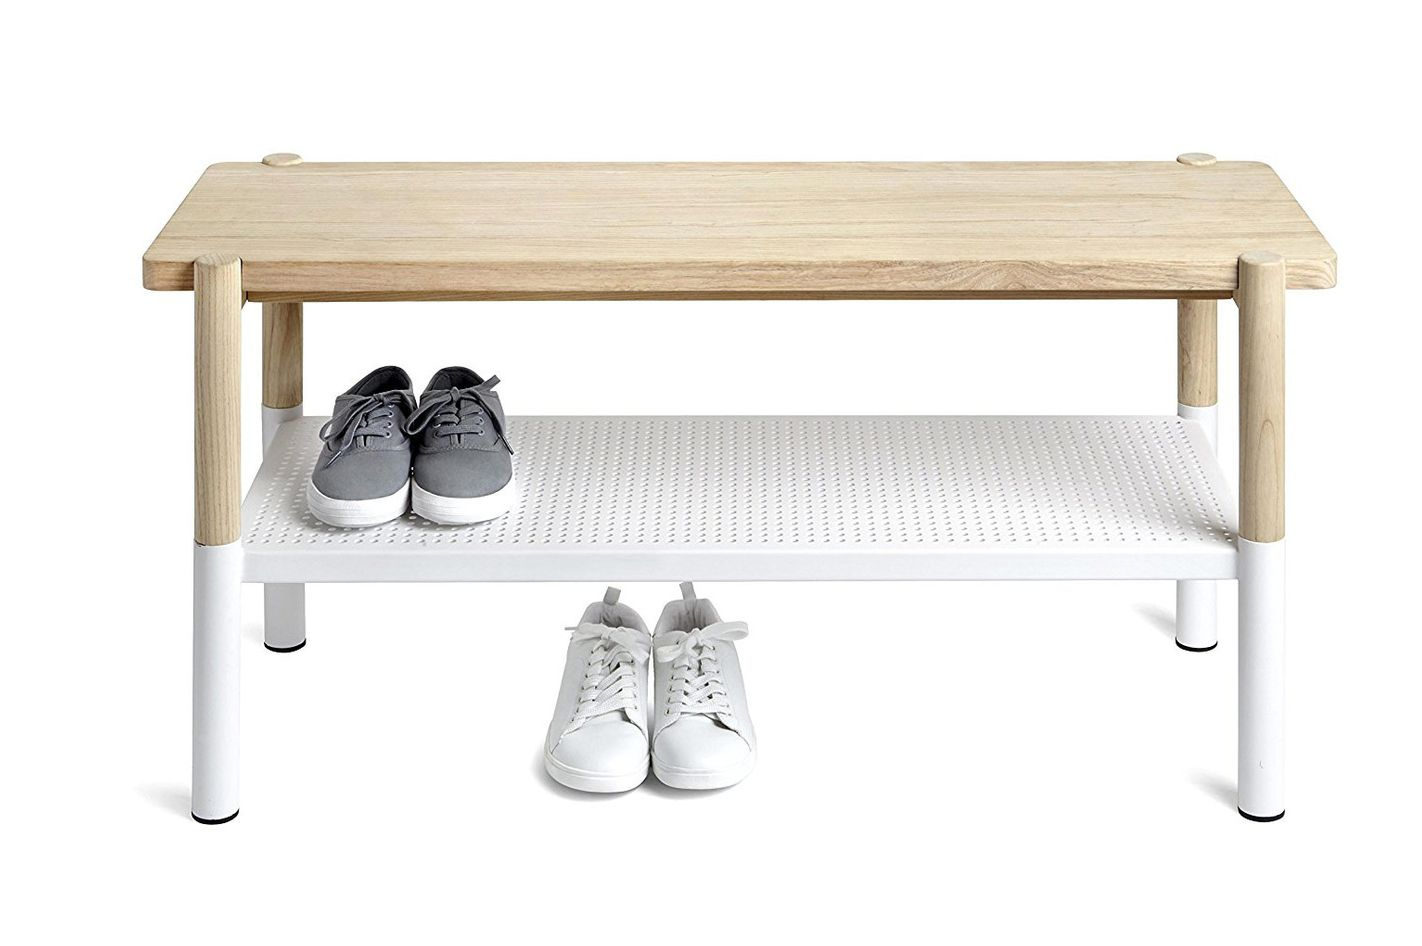 100 Acrylic Coffee Table With Shelf White Lacquer And Acrylic Coffee Table Mecox Gardens